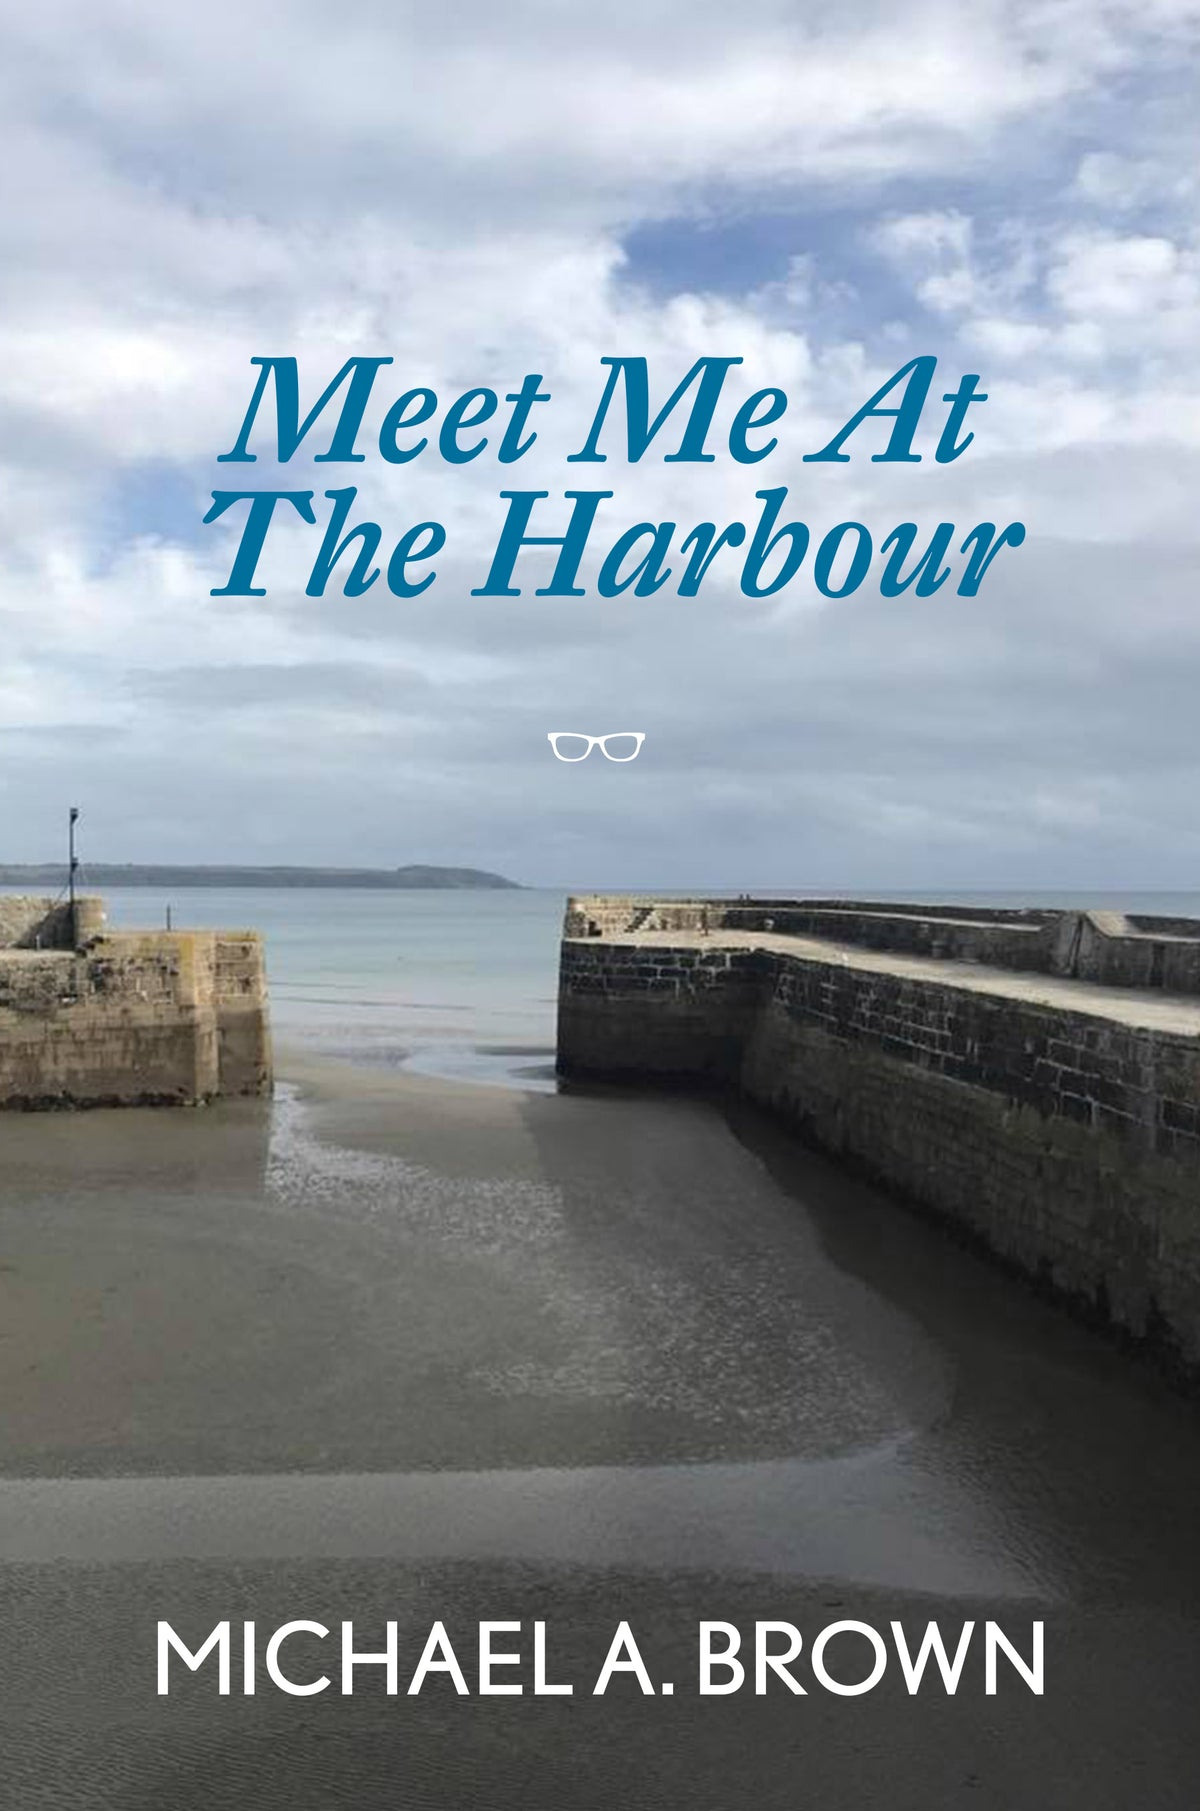 Meet Me At The Harbour